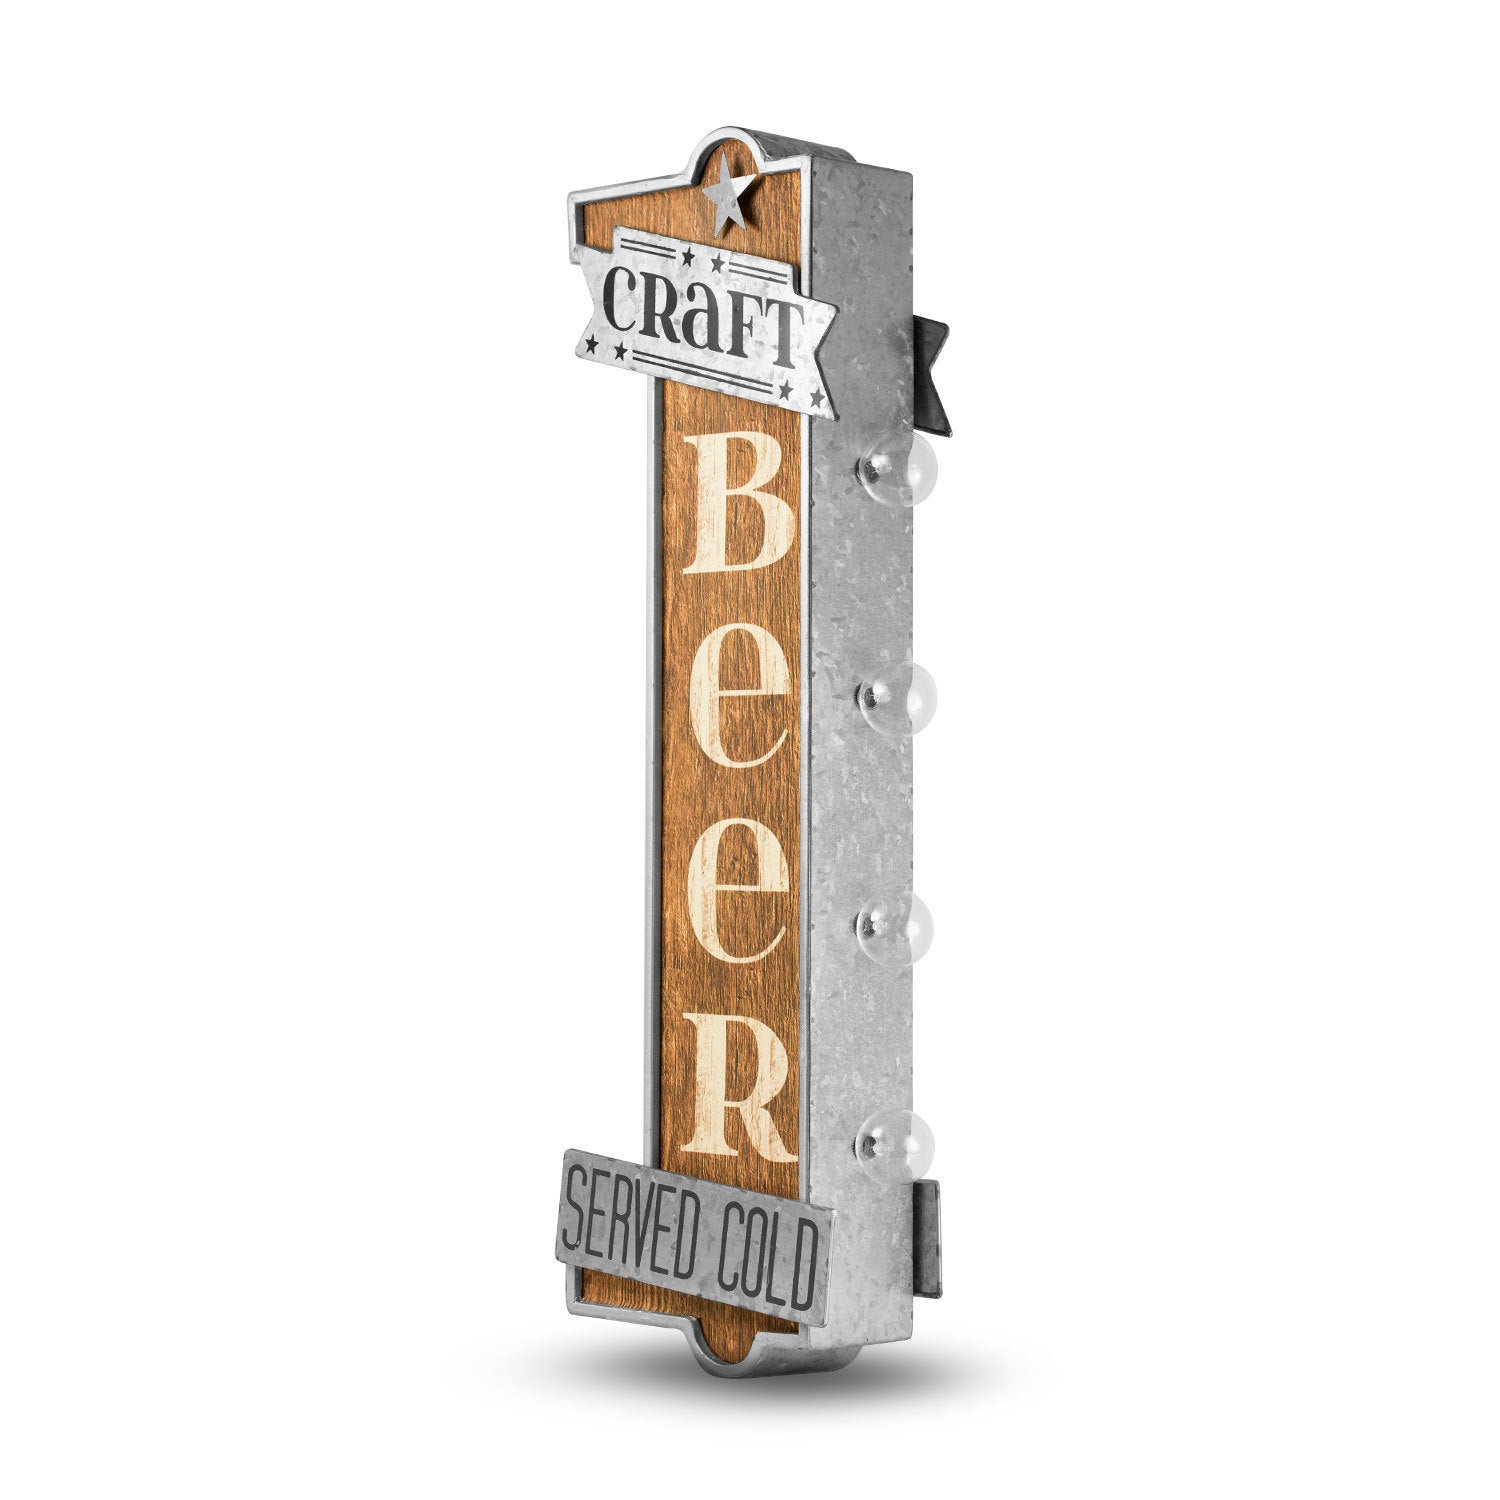 Craft Beer Metal Bar Vintage Marquee Led Sign Man Cave Wall Decor Free Shipping Today 16069633